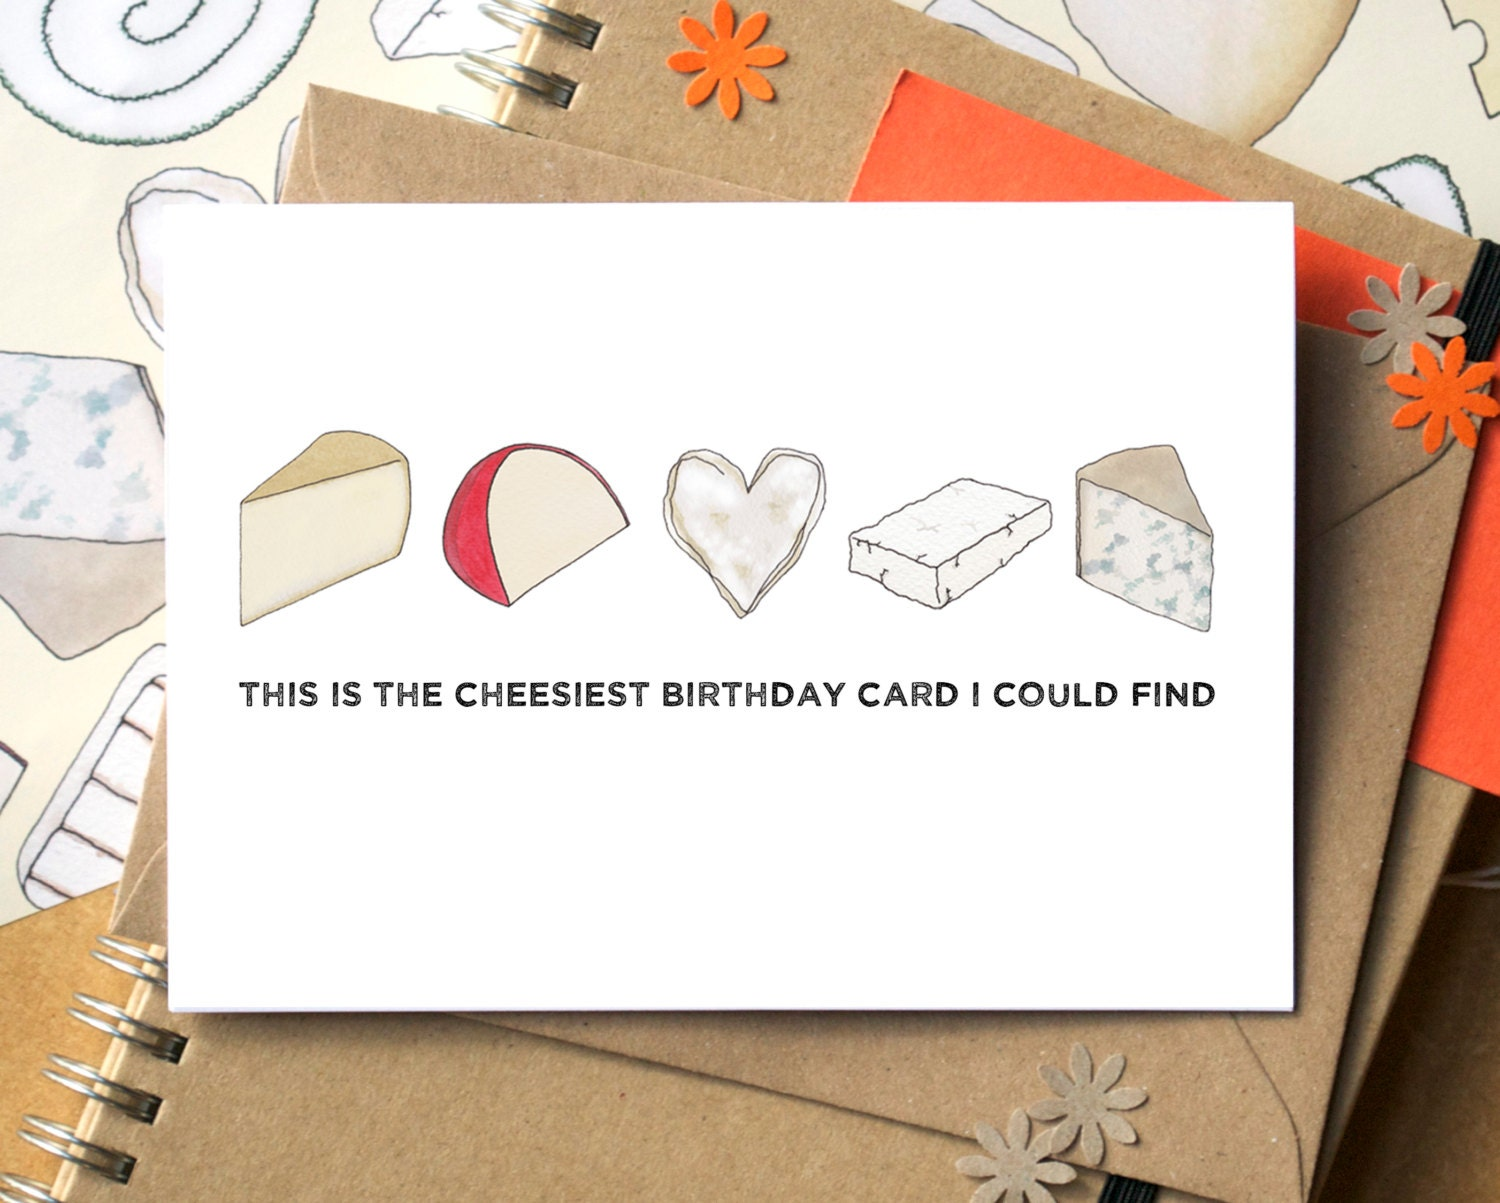 Cheesy Birthday Card Funny Birthday Card Card for Cheese – Something to Write on a Birthday Card